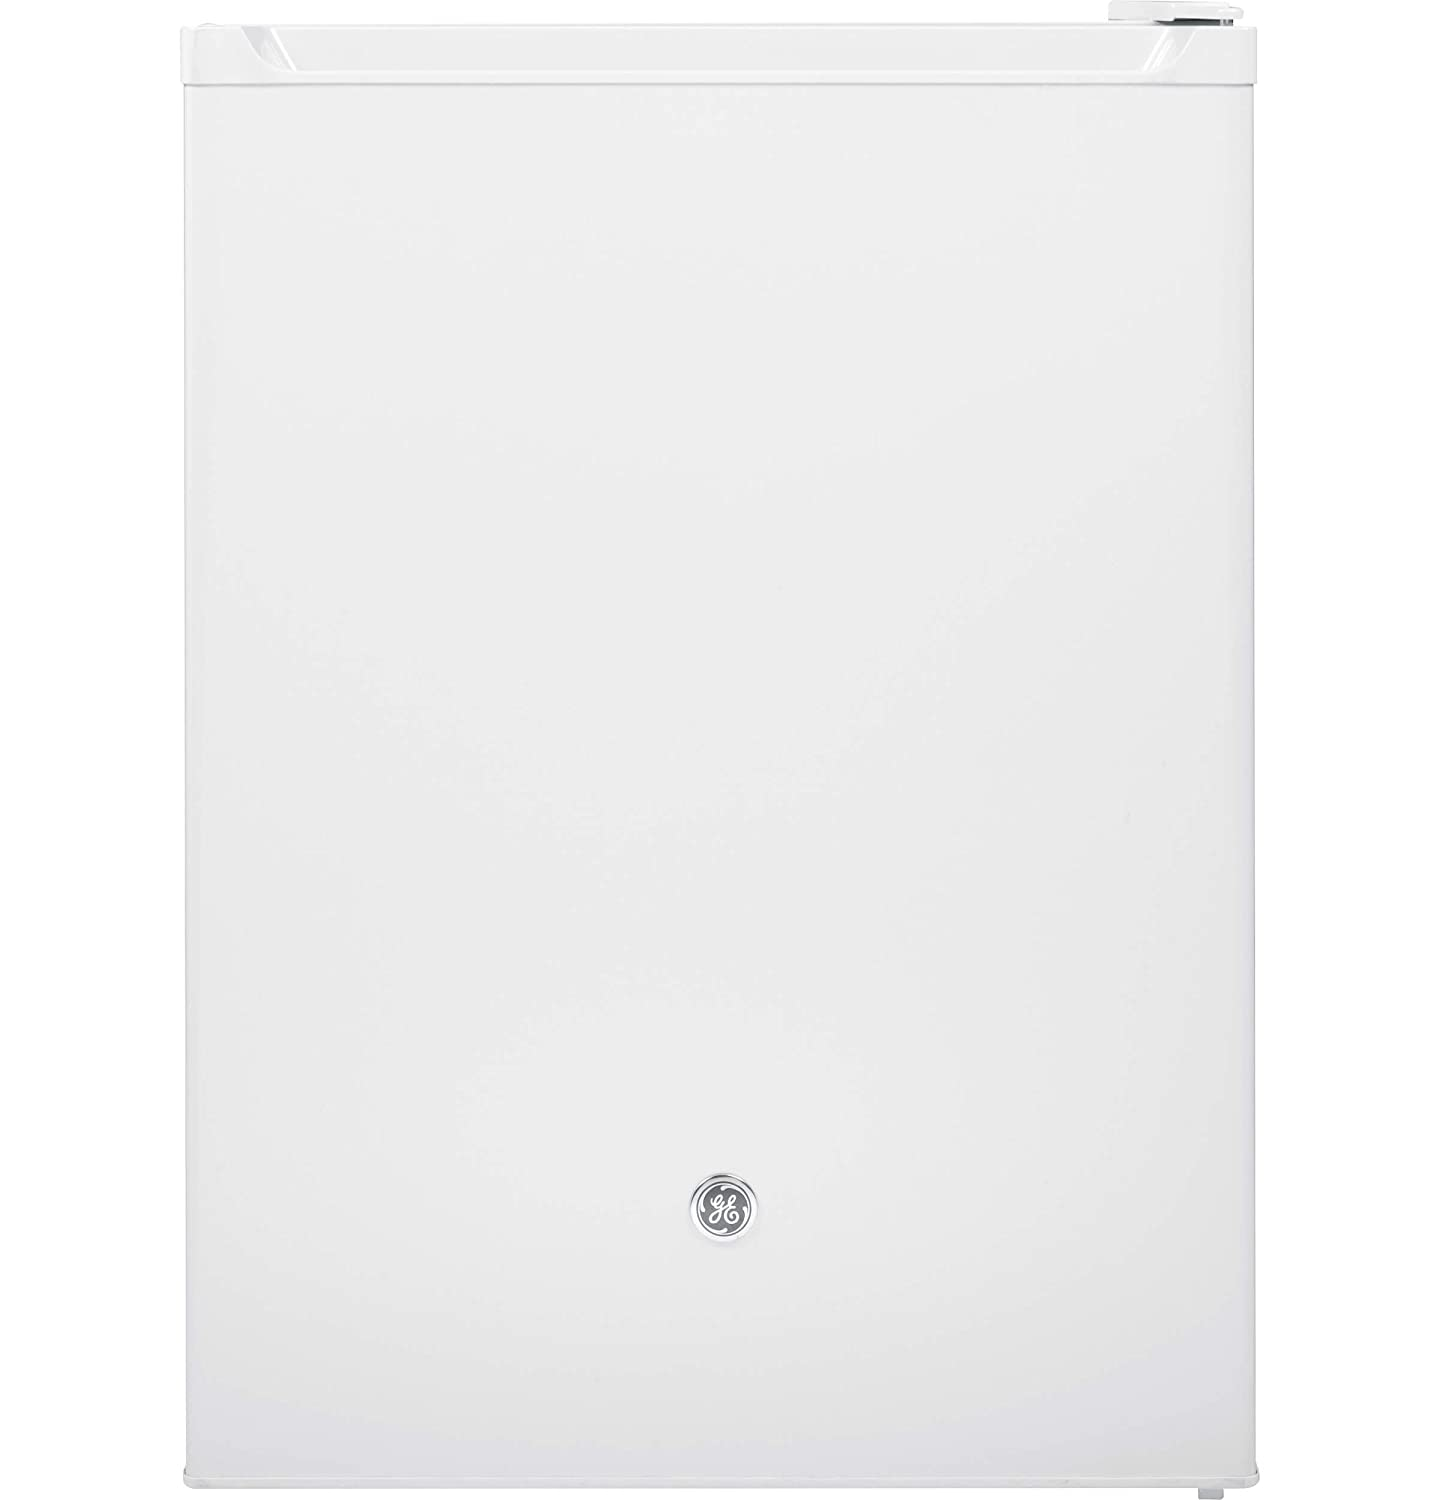 GE GCE06GGHWW Spacemaker 5.6 Cu. Ft. White Undercounter Compact Refrigerator - Energy Star